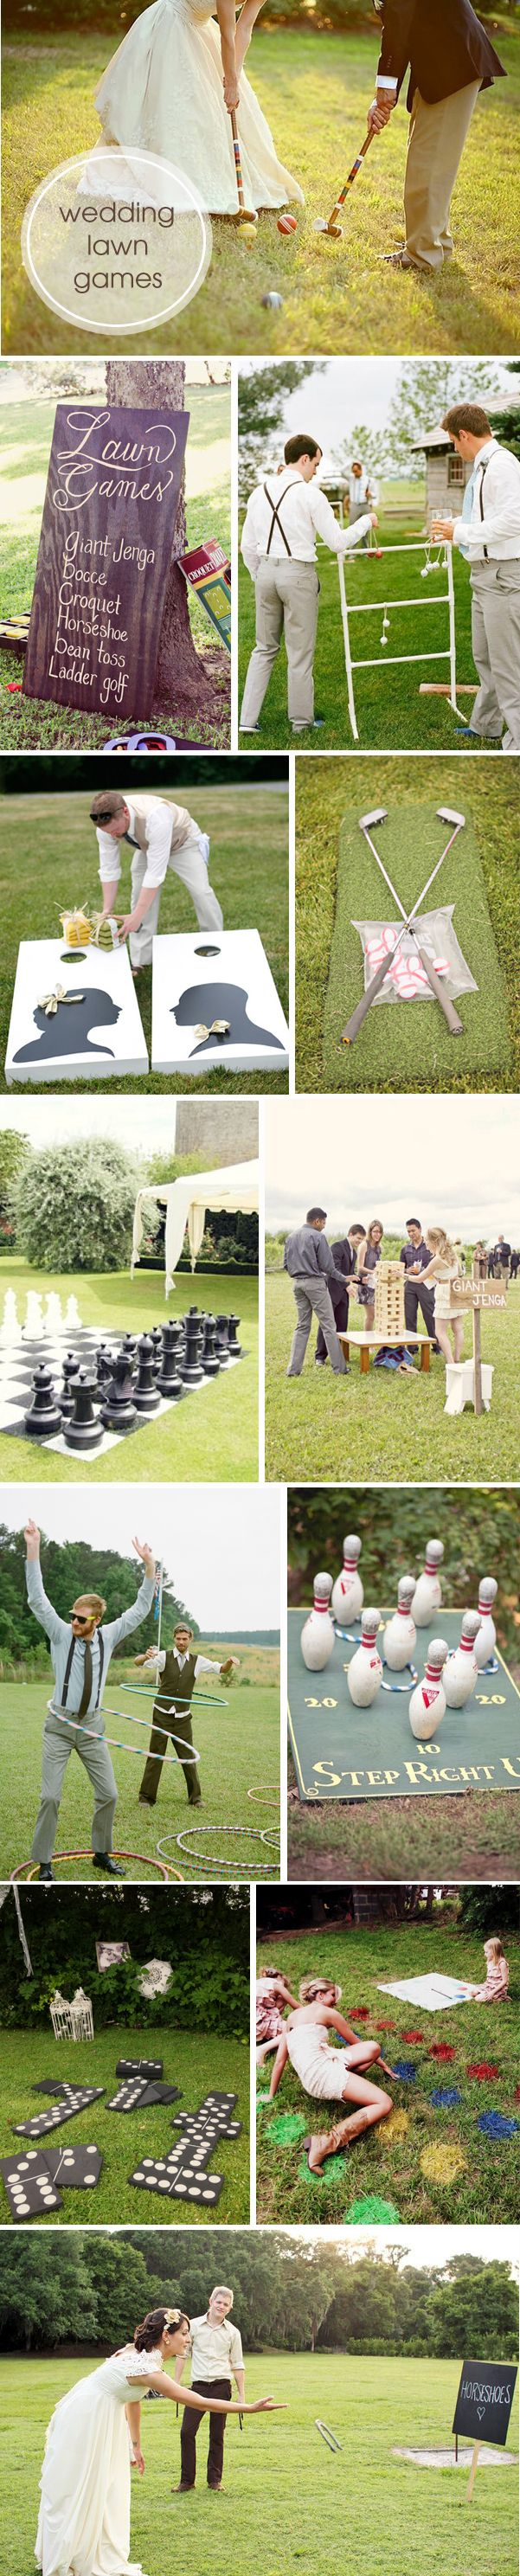 This is a great idea round-up | wedding lawn games